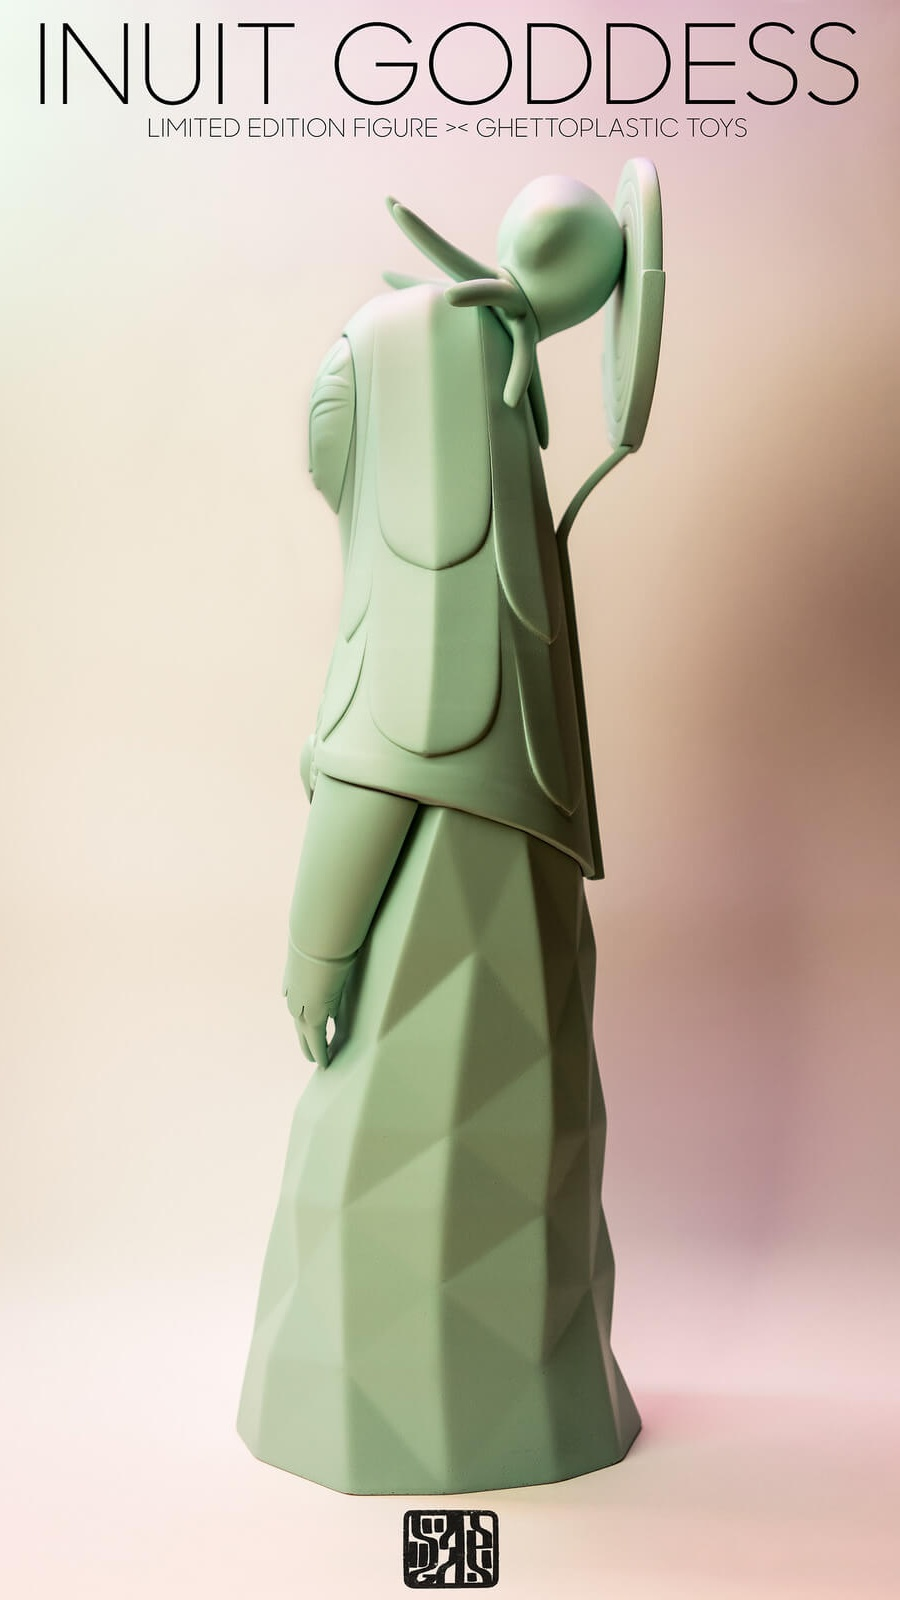 Inuit Goddess By Ghettoplastic Toys Sadgas side 2